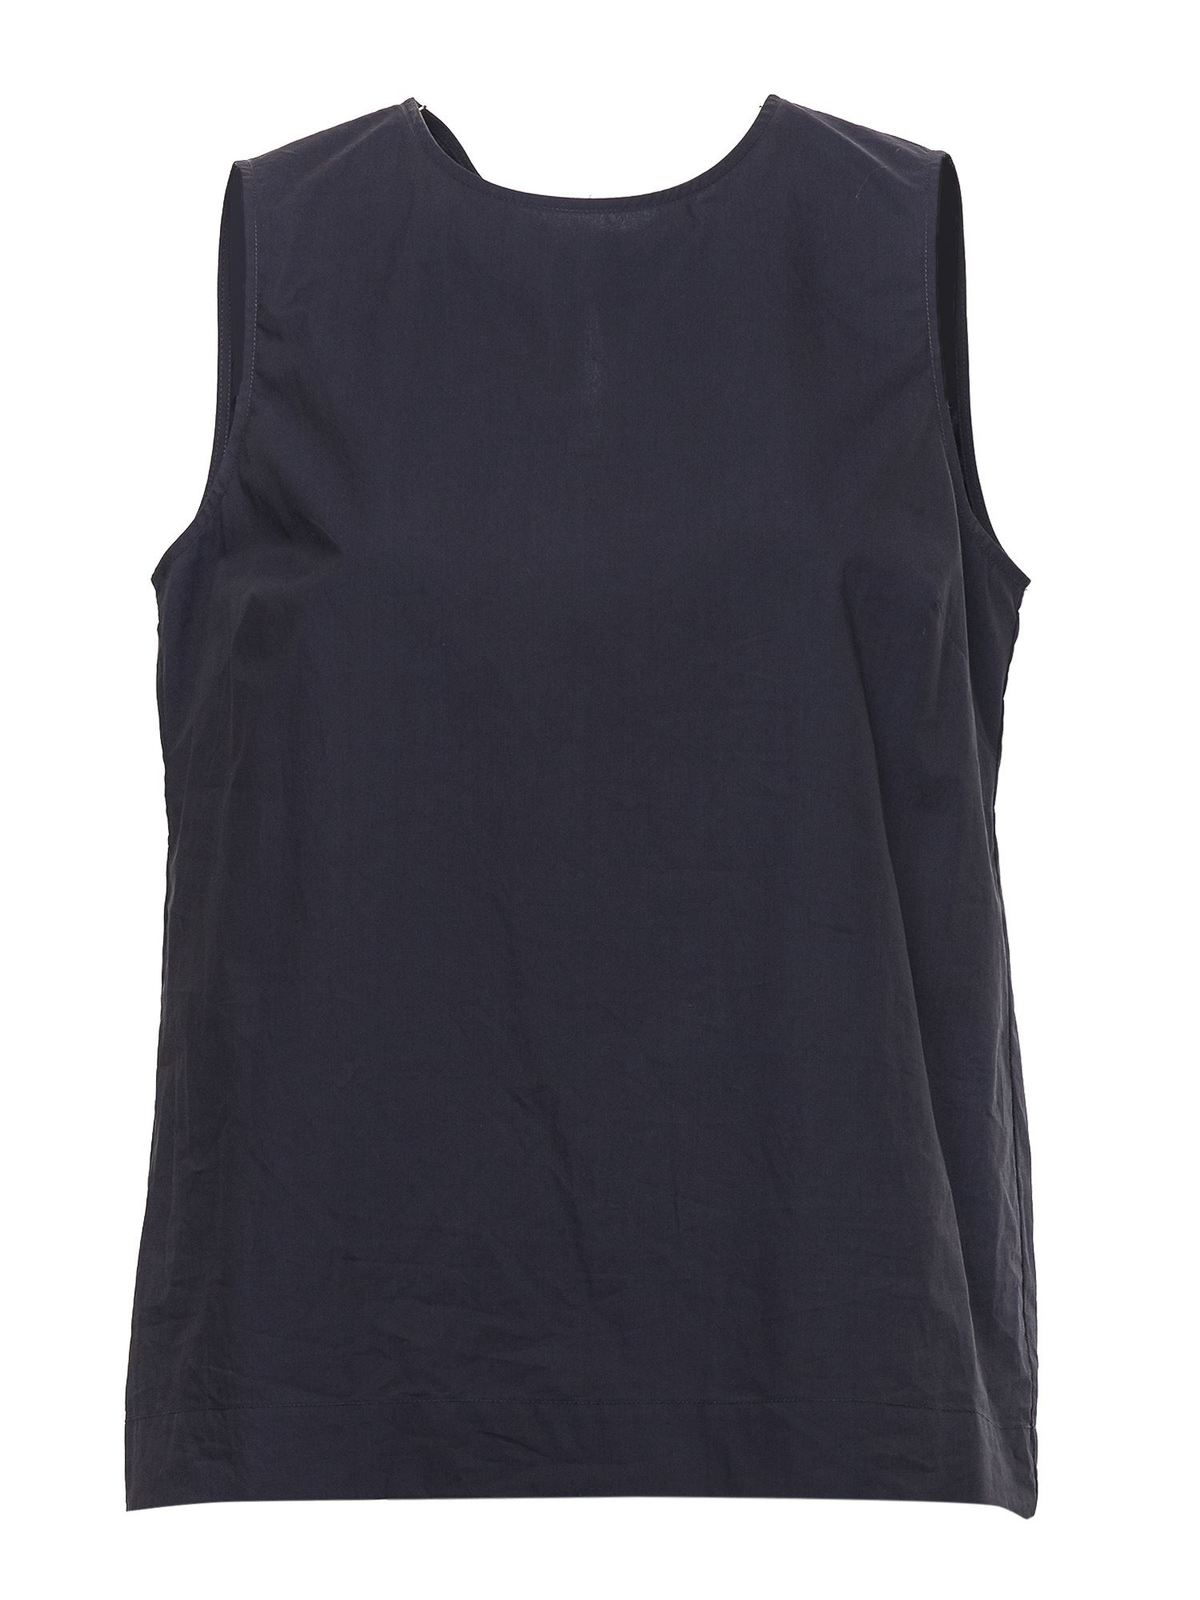 P.A.R.O.S.H. COTTON TOP IN BLUE